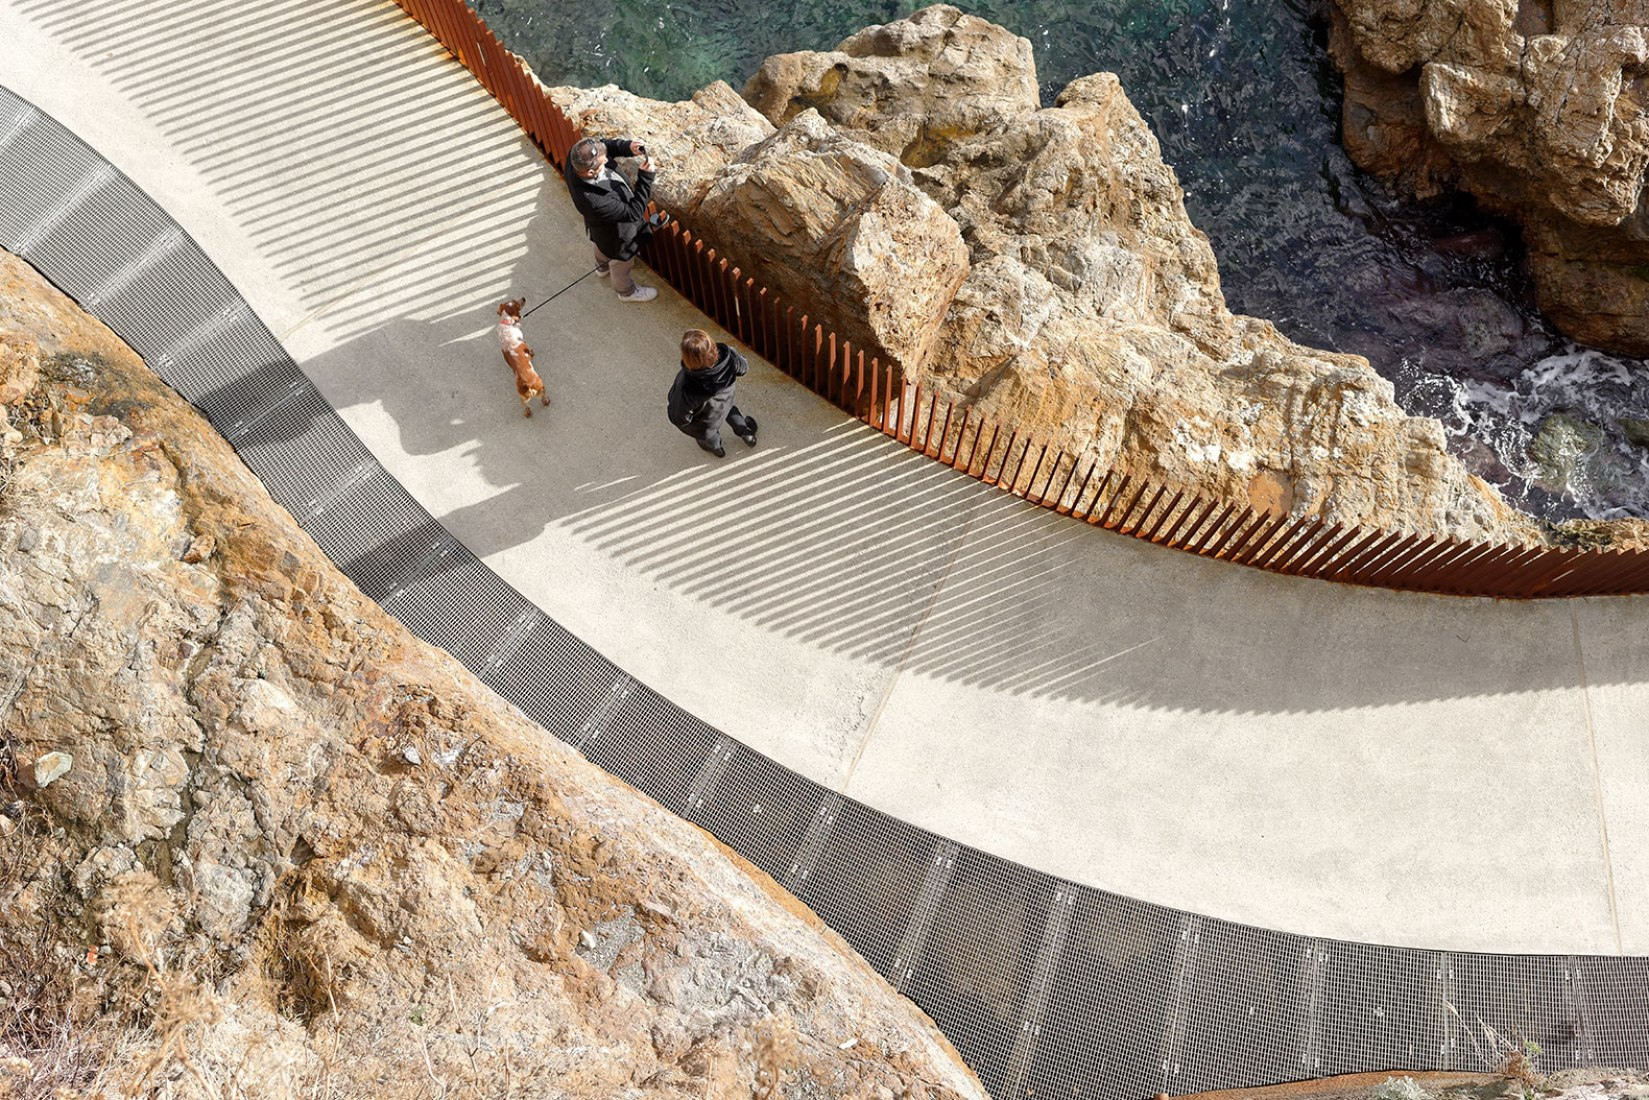 Walkway l'Aldilonda around the Citadel of Bastia by Dietmar Feichtinger Architectes. Photograph by David Boureau